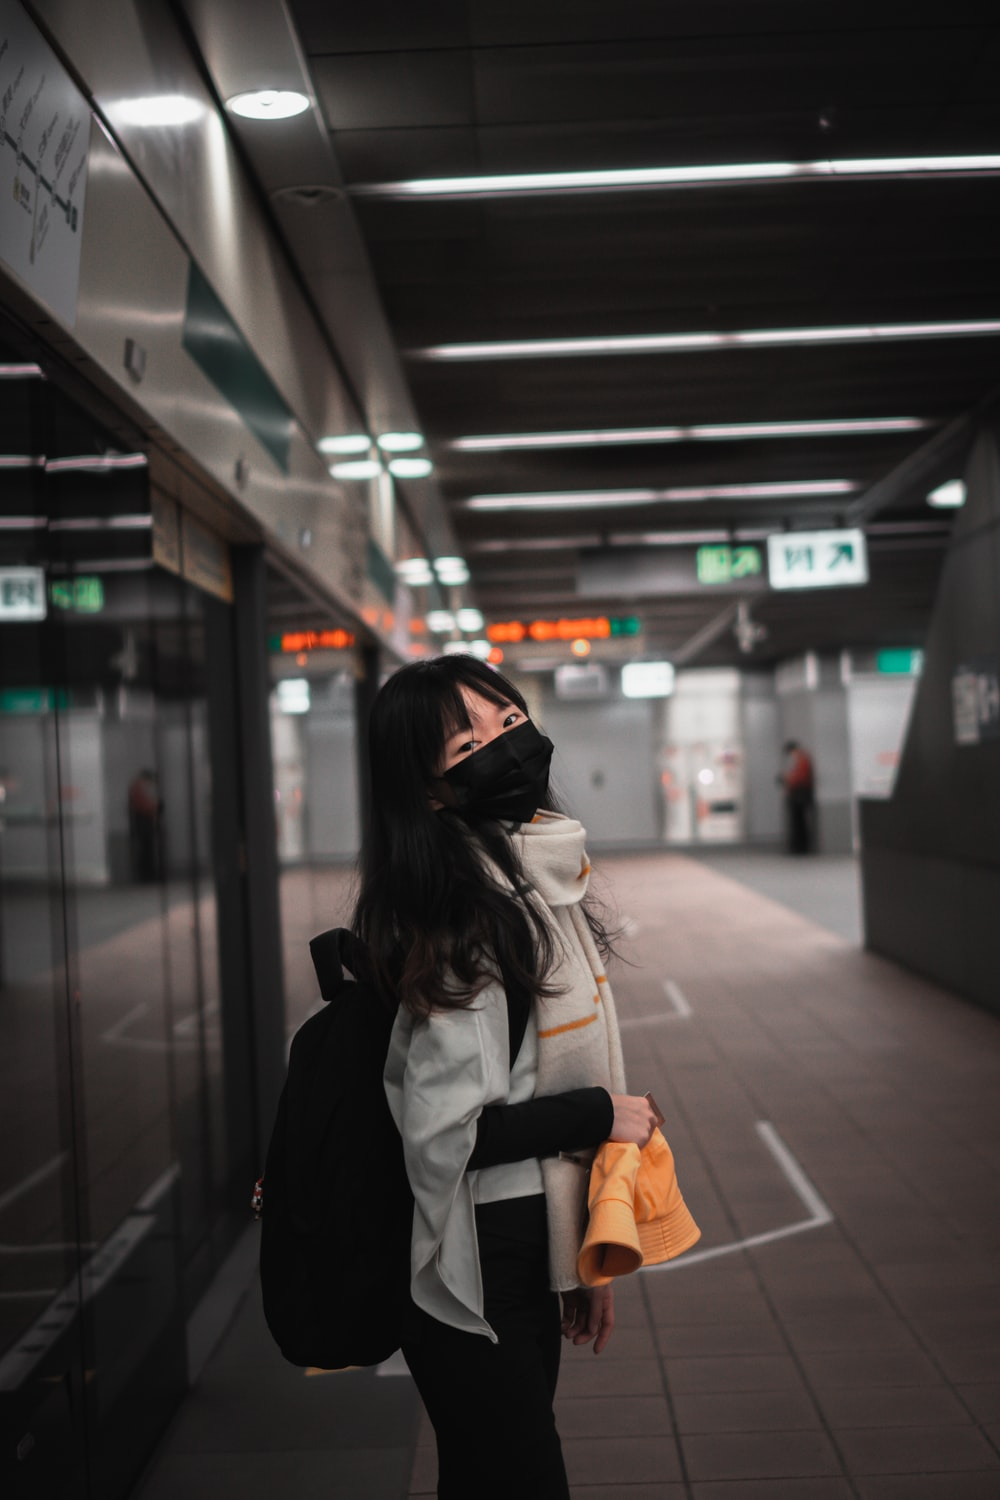 woman in black jacket and white backpack standing in train station